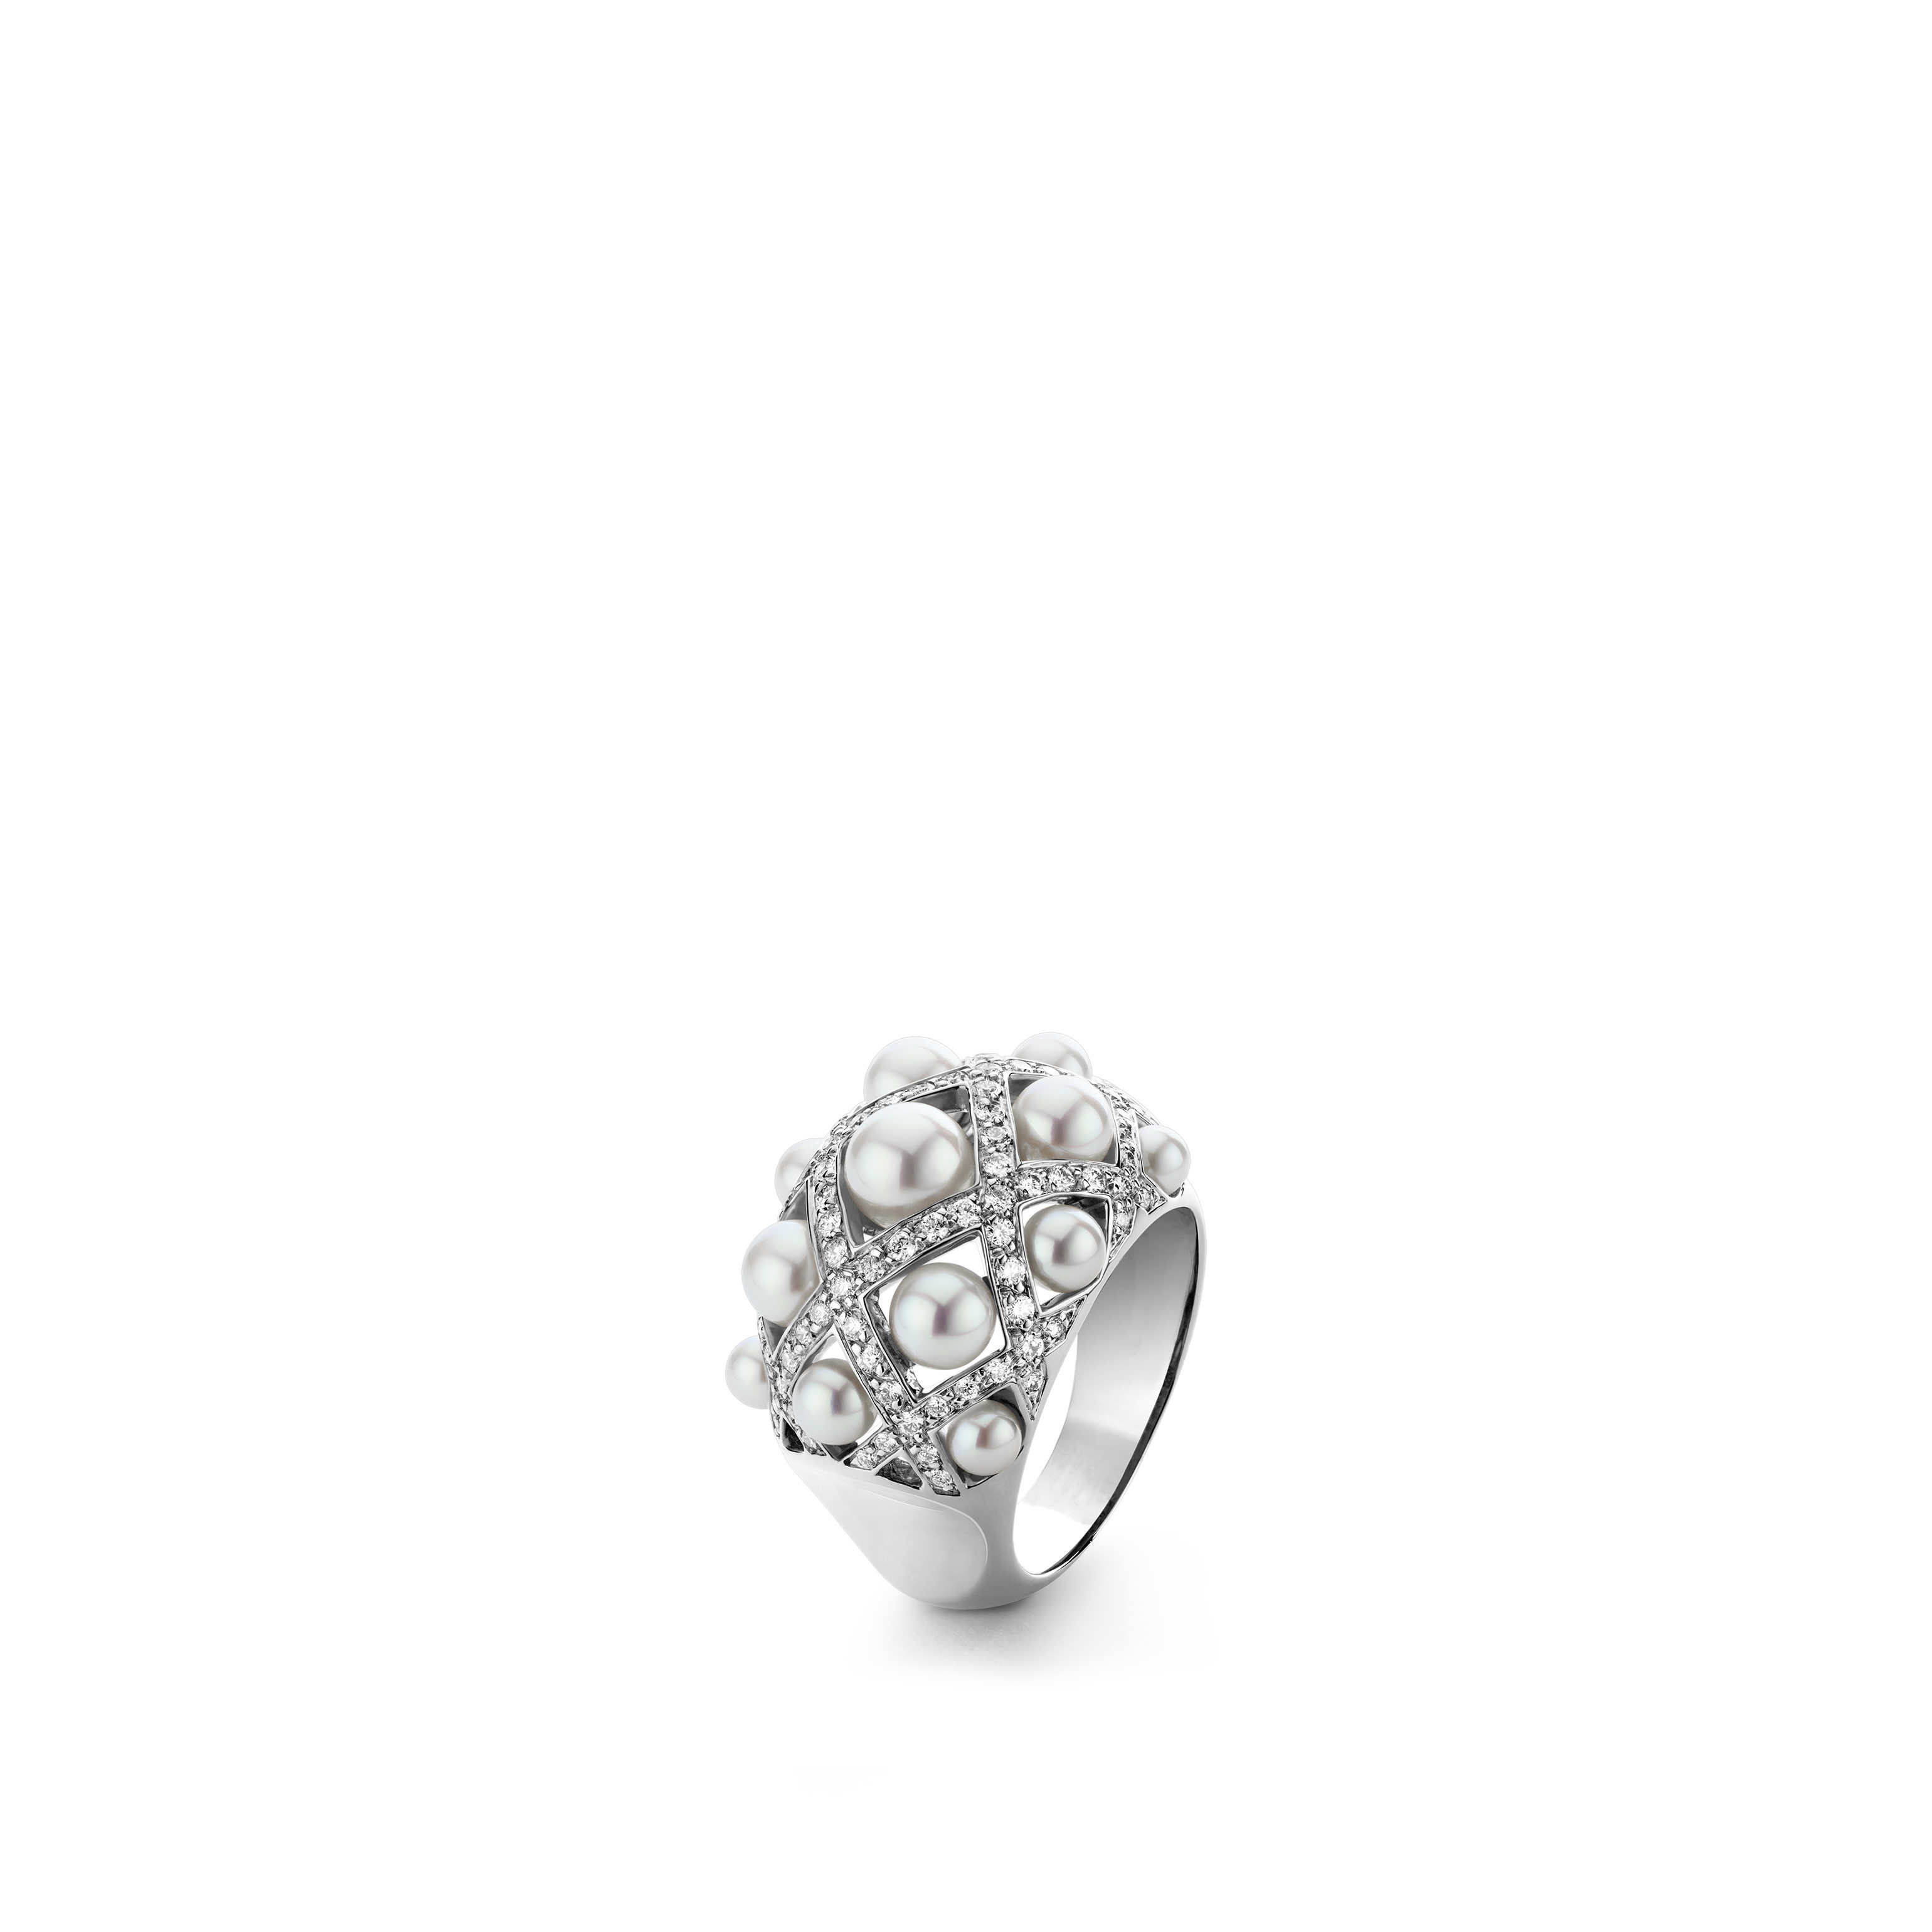 Perles Matelassé ring - Medium version, 18K white gold, diamonds, cultured pearls - CHANEL - Default view - see standard sized version